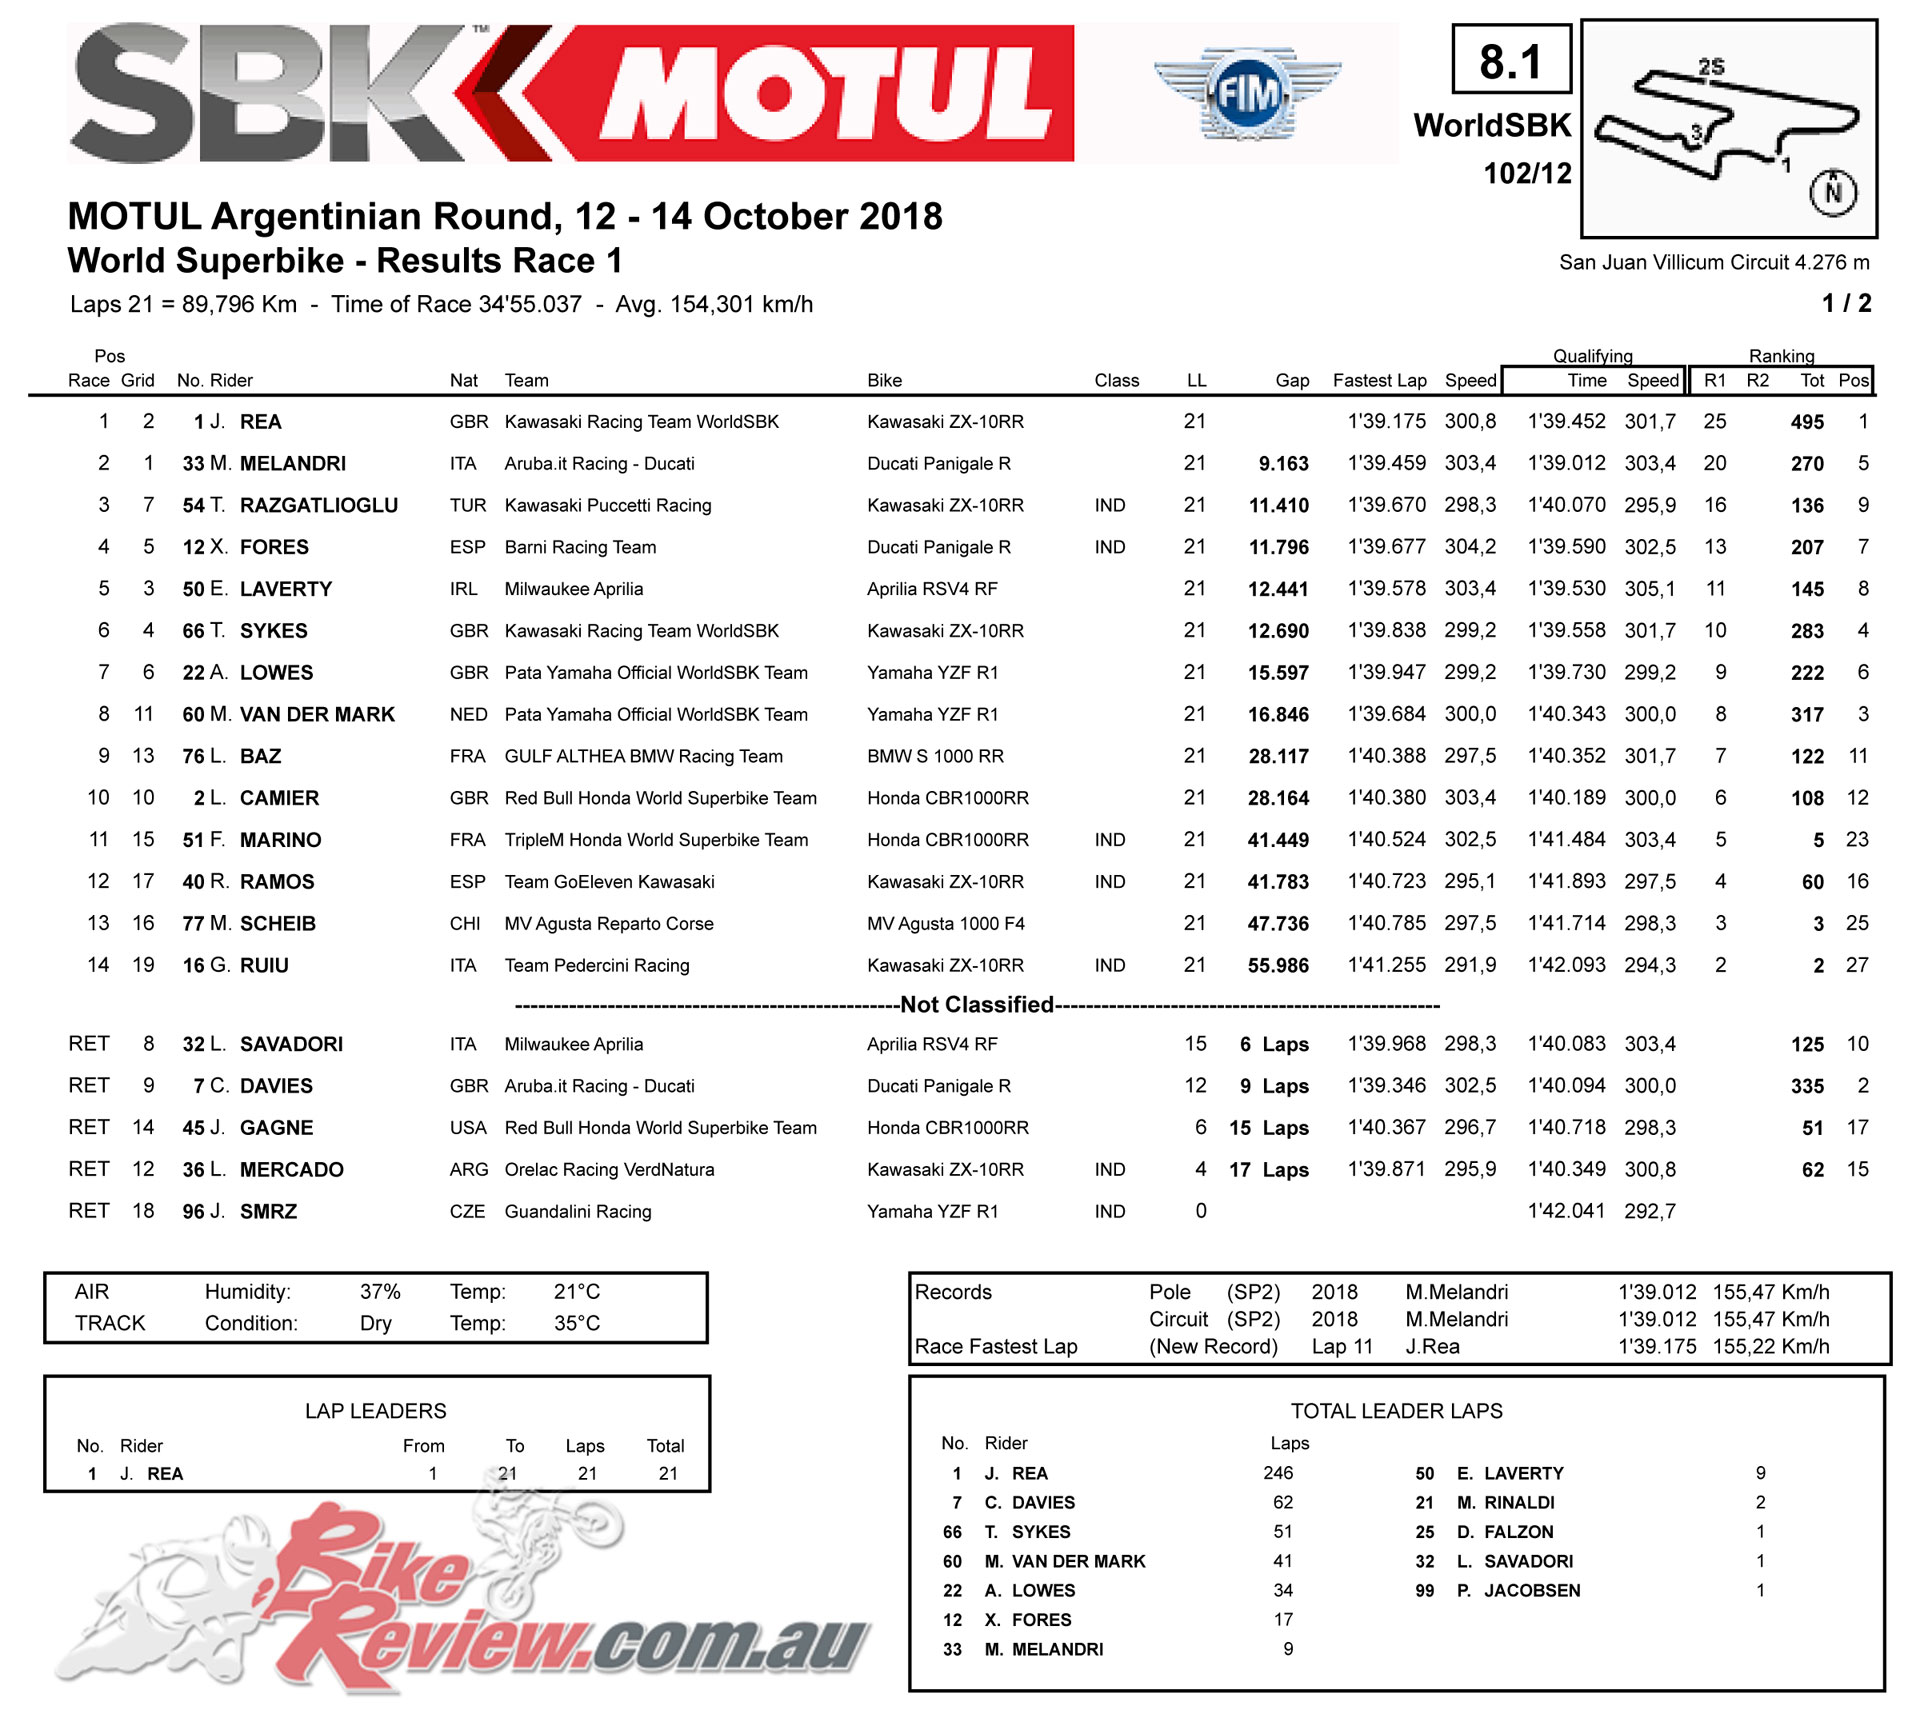 World Superbike Race 1 Results - Argentina 2018